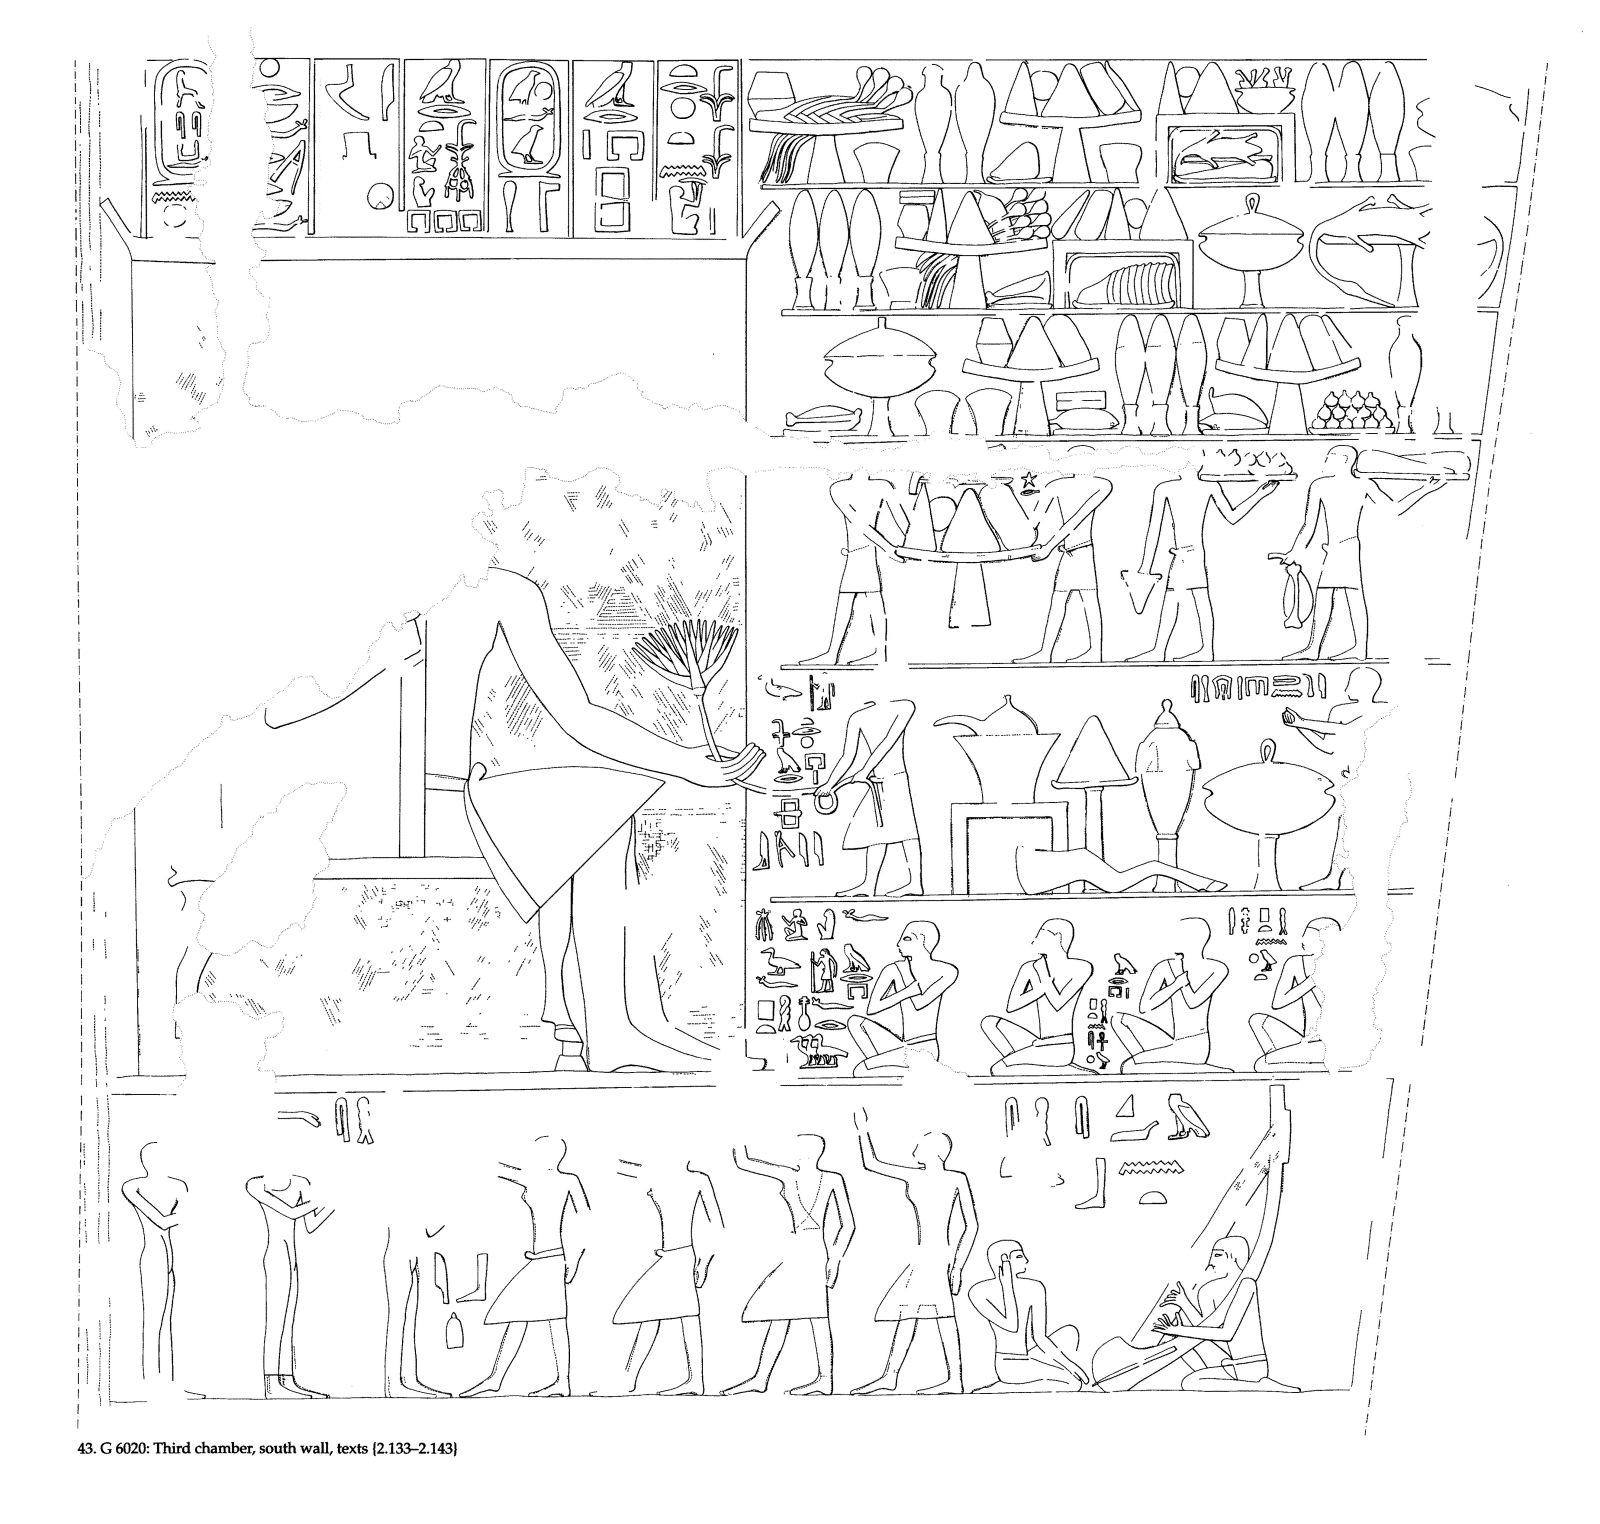 Drawings: G 6020: relief from third chamber, S wall